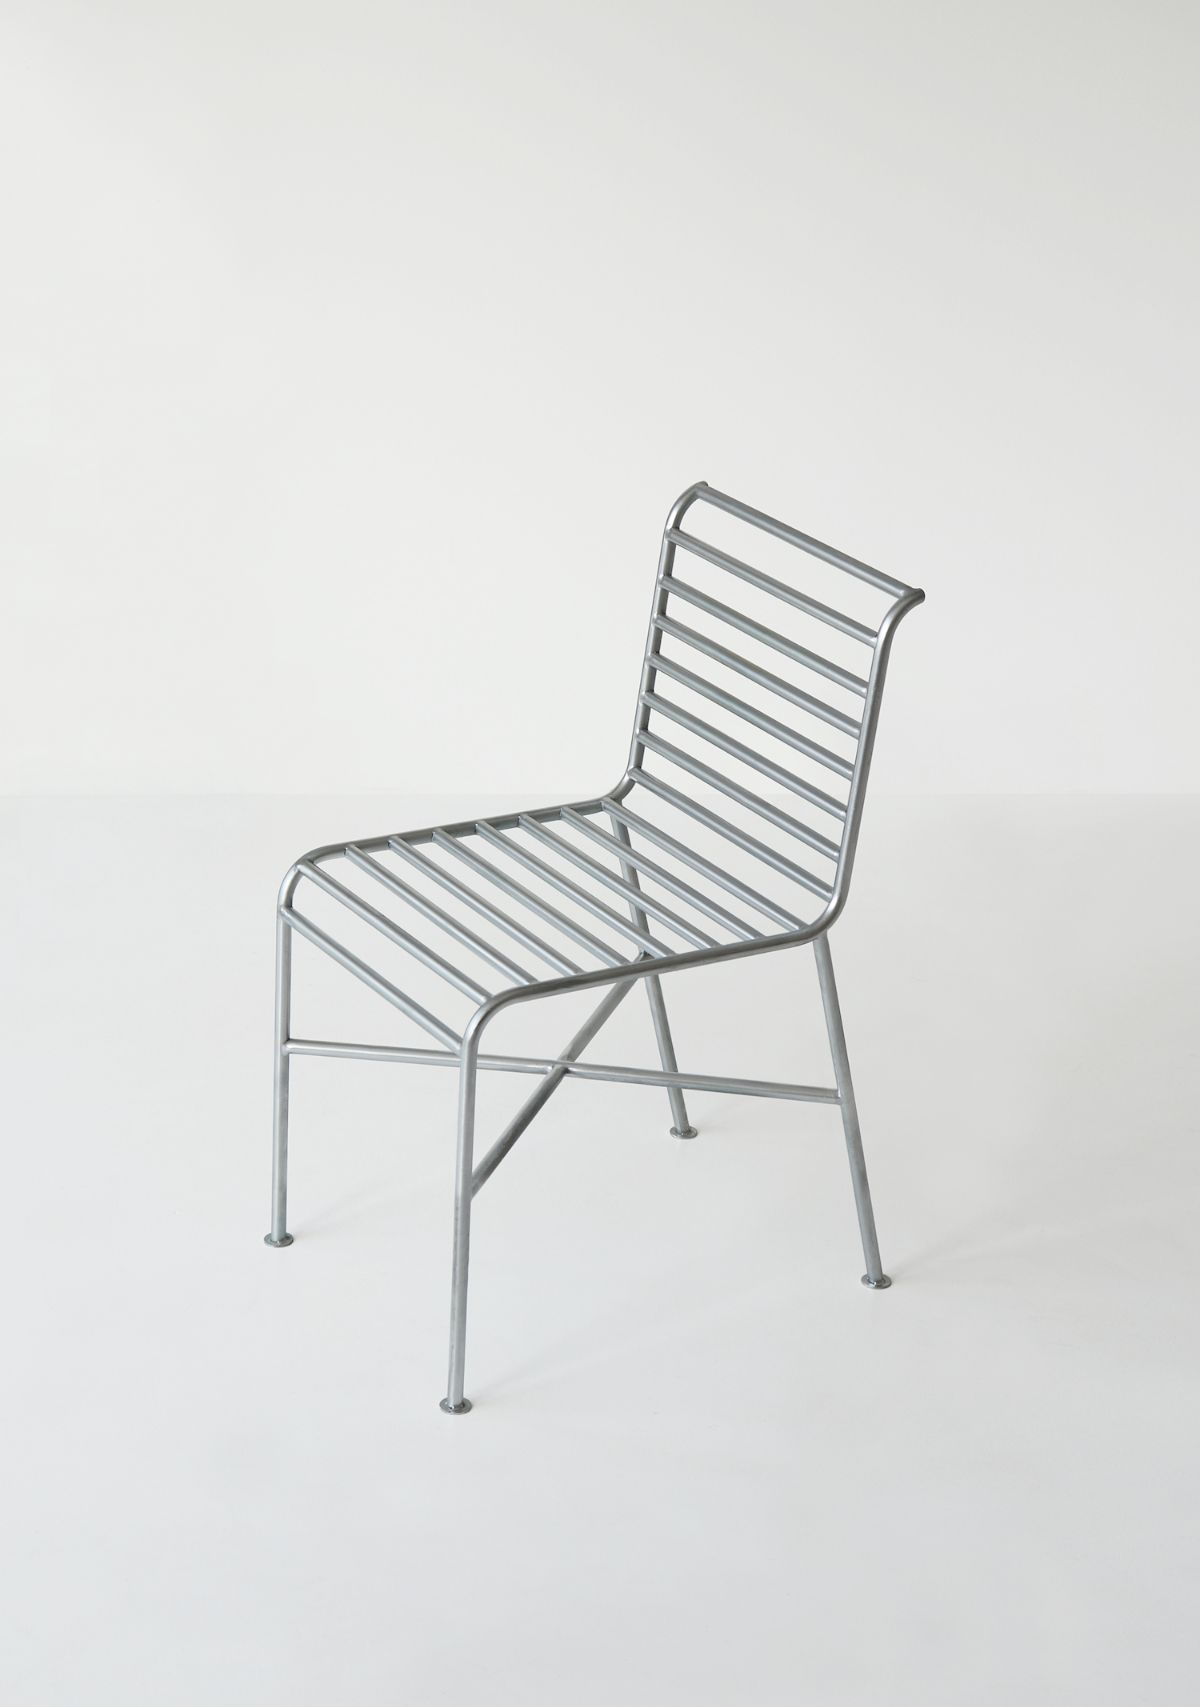 Garden Chair by Jungmo Yang